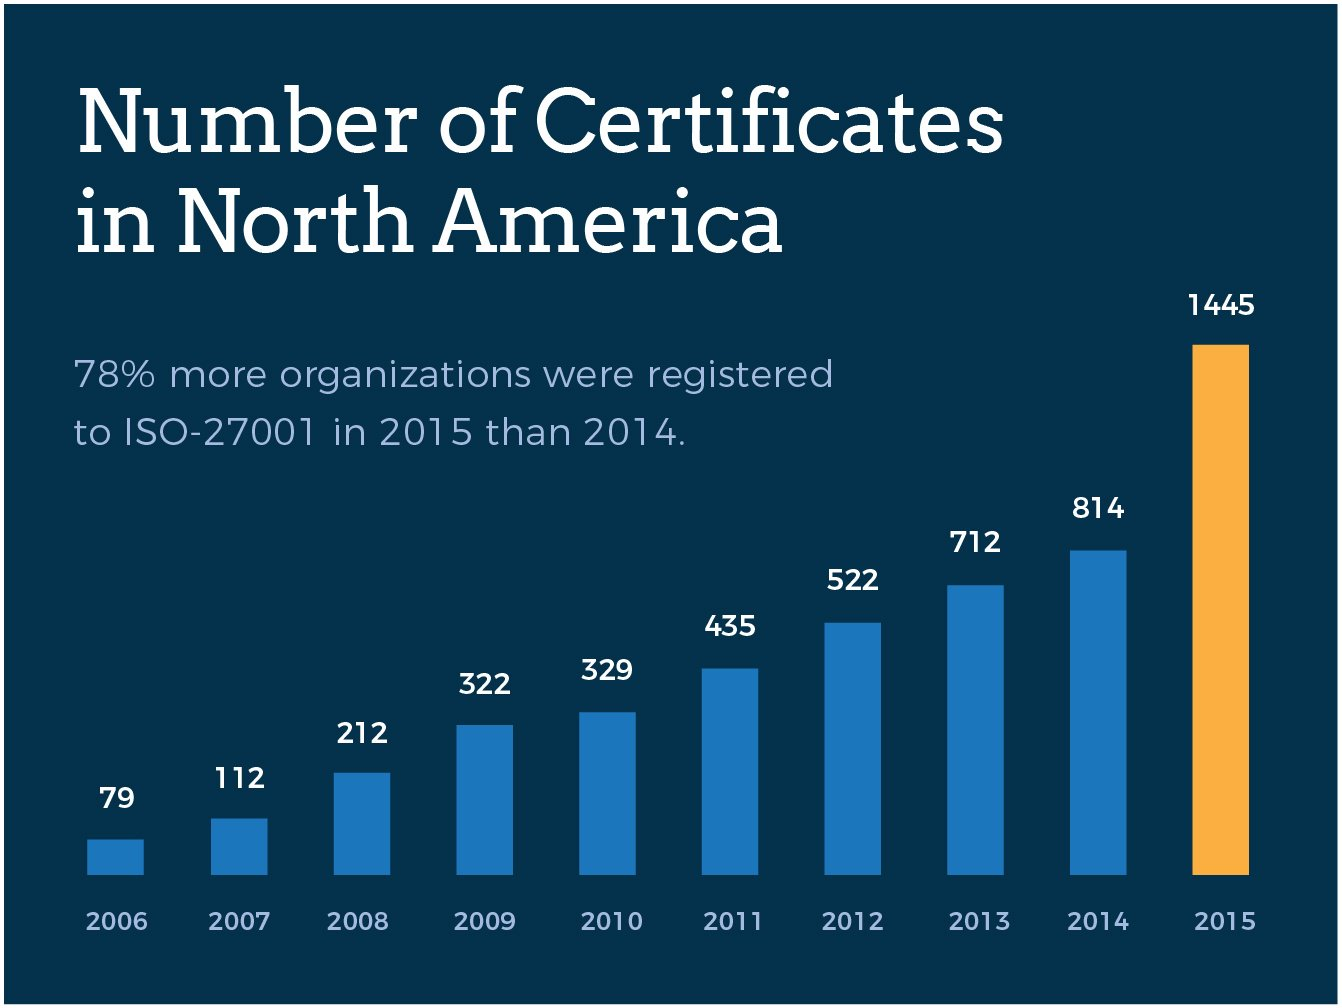 ISO 27001 certifcation trends over time